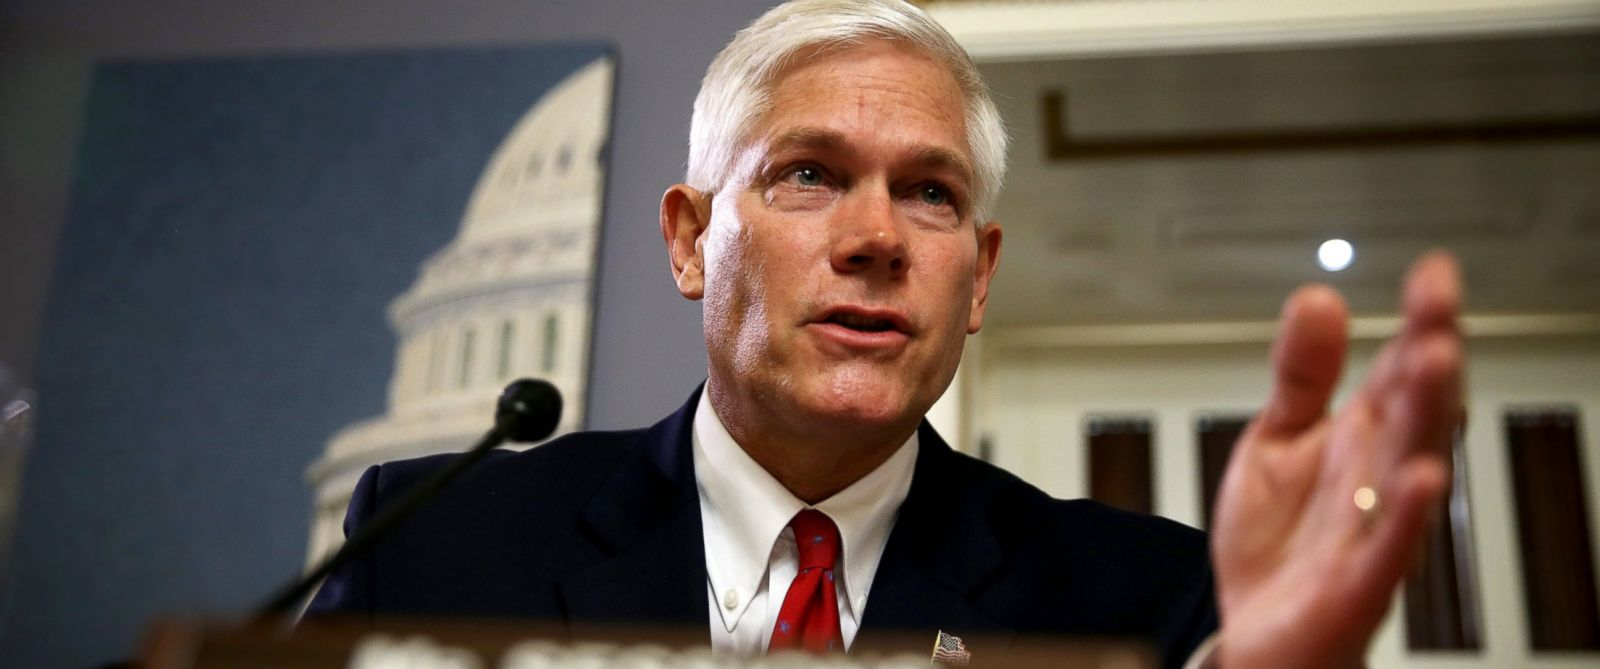 PHOTO: Committee chairman Rep. Pete Sessions speaks duirng a House Rules Committee meeting, Aug. 1, 2014, in Washington.